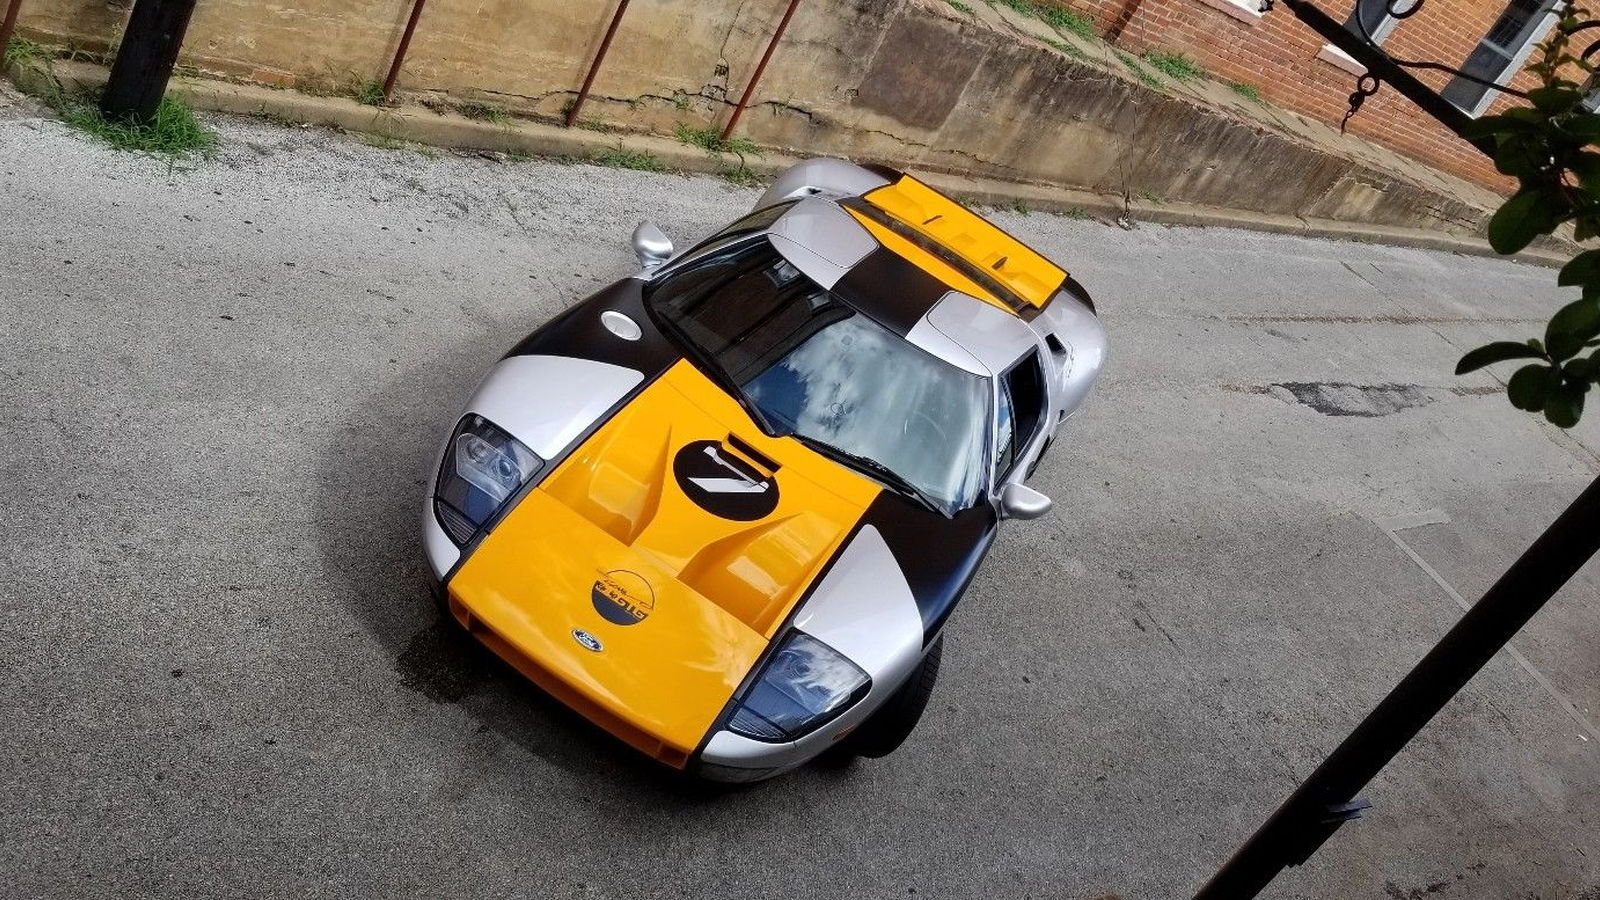 Camilo Pardo's 2005 Ford GT is for sale